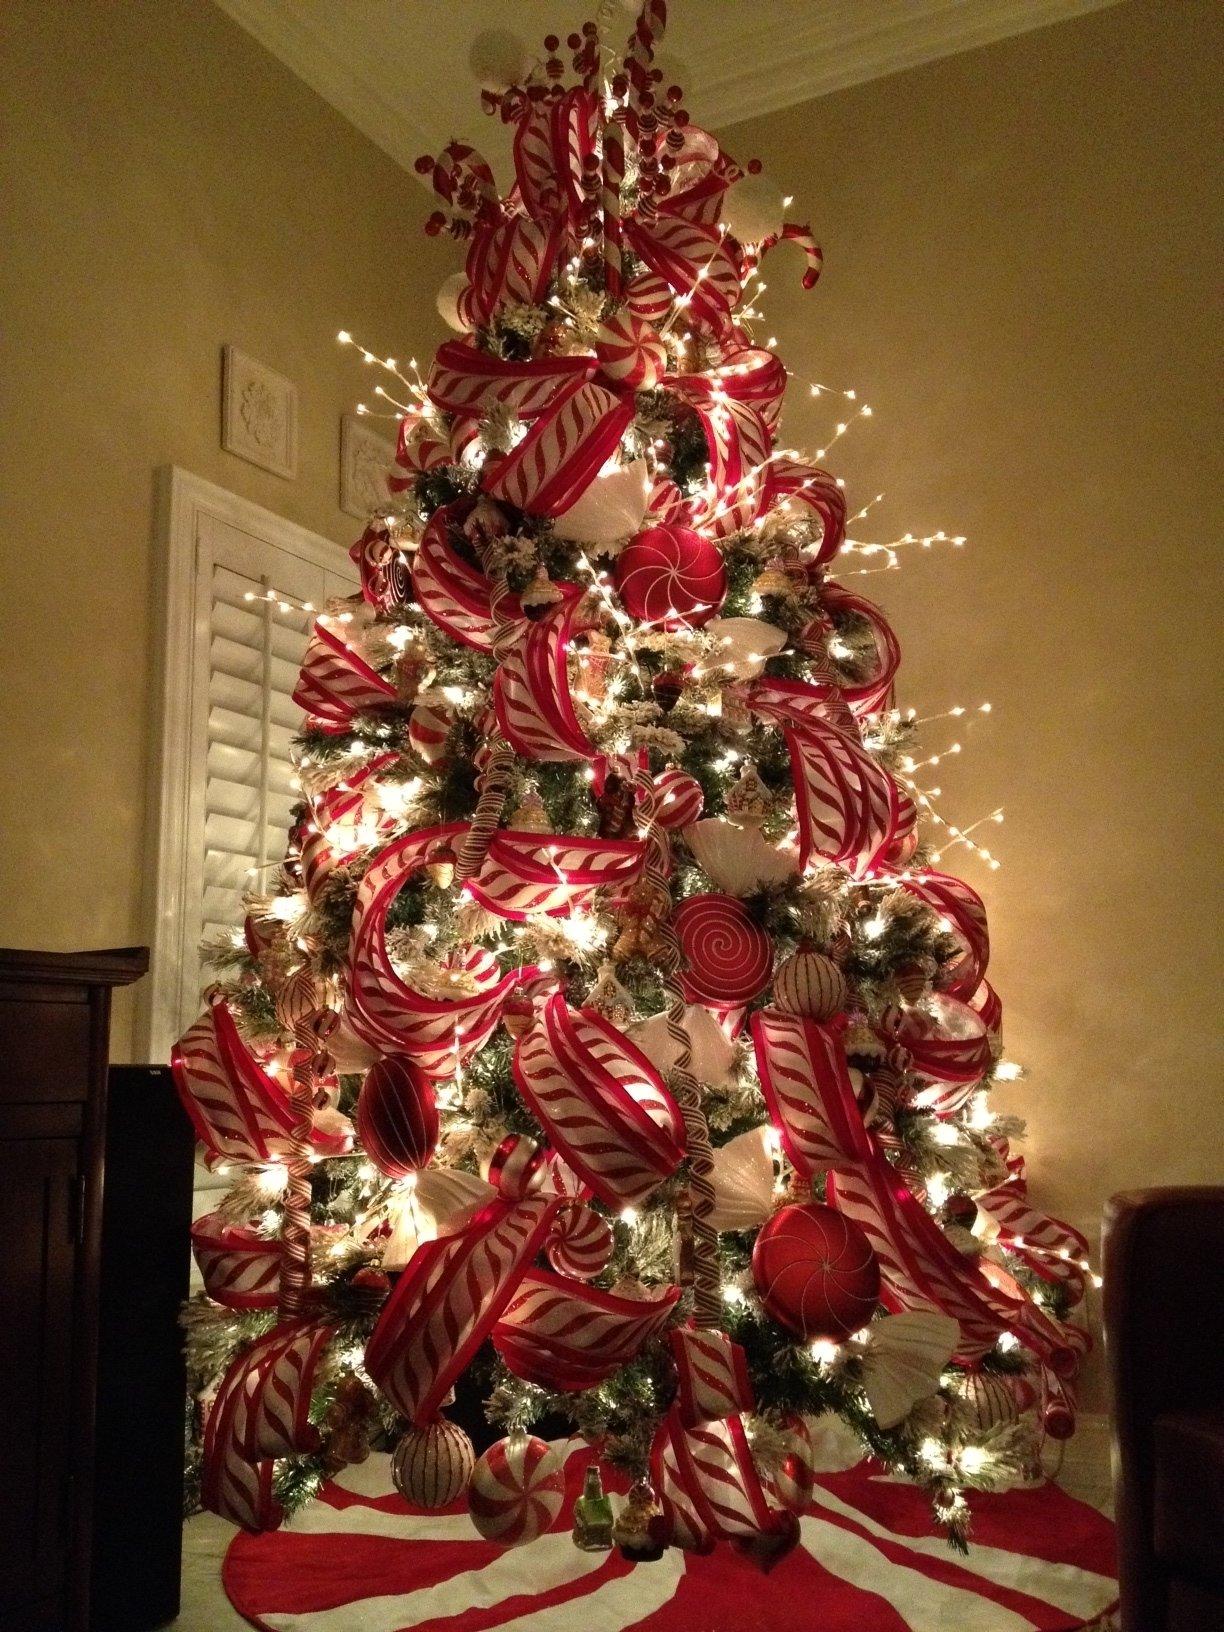 10 Unique Christmas Tree Decorating Ideas For 2012 images about peppermint christmas theme on pinterest candy canes and 2020